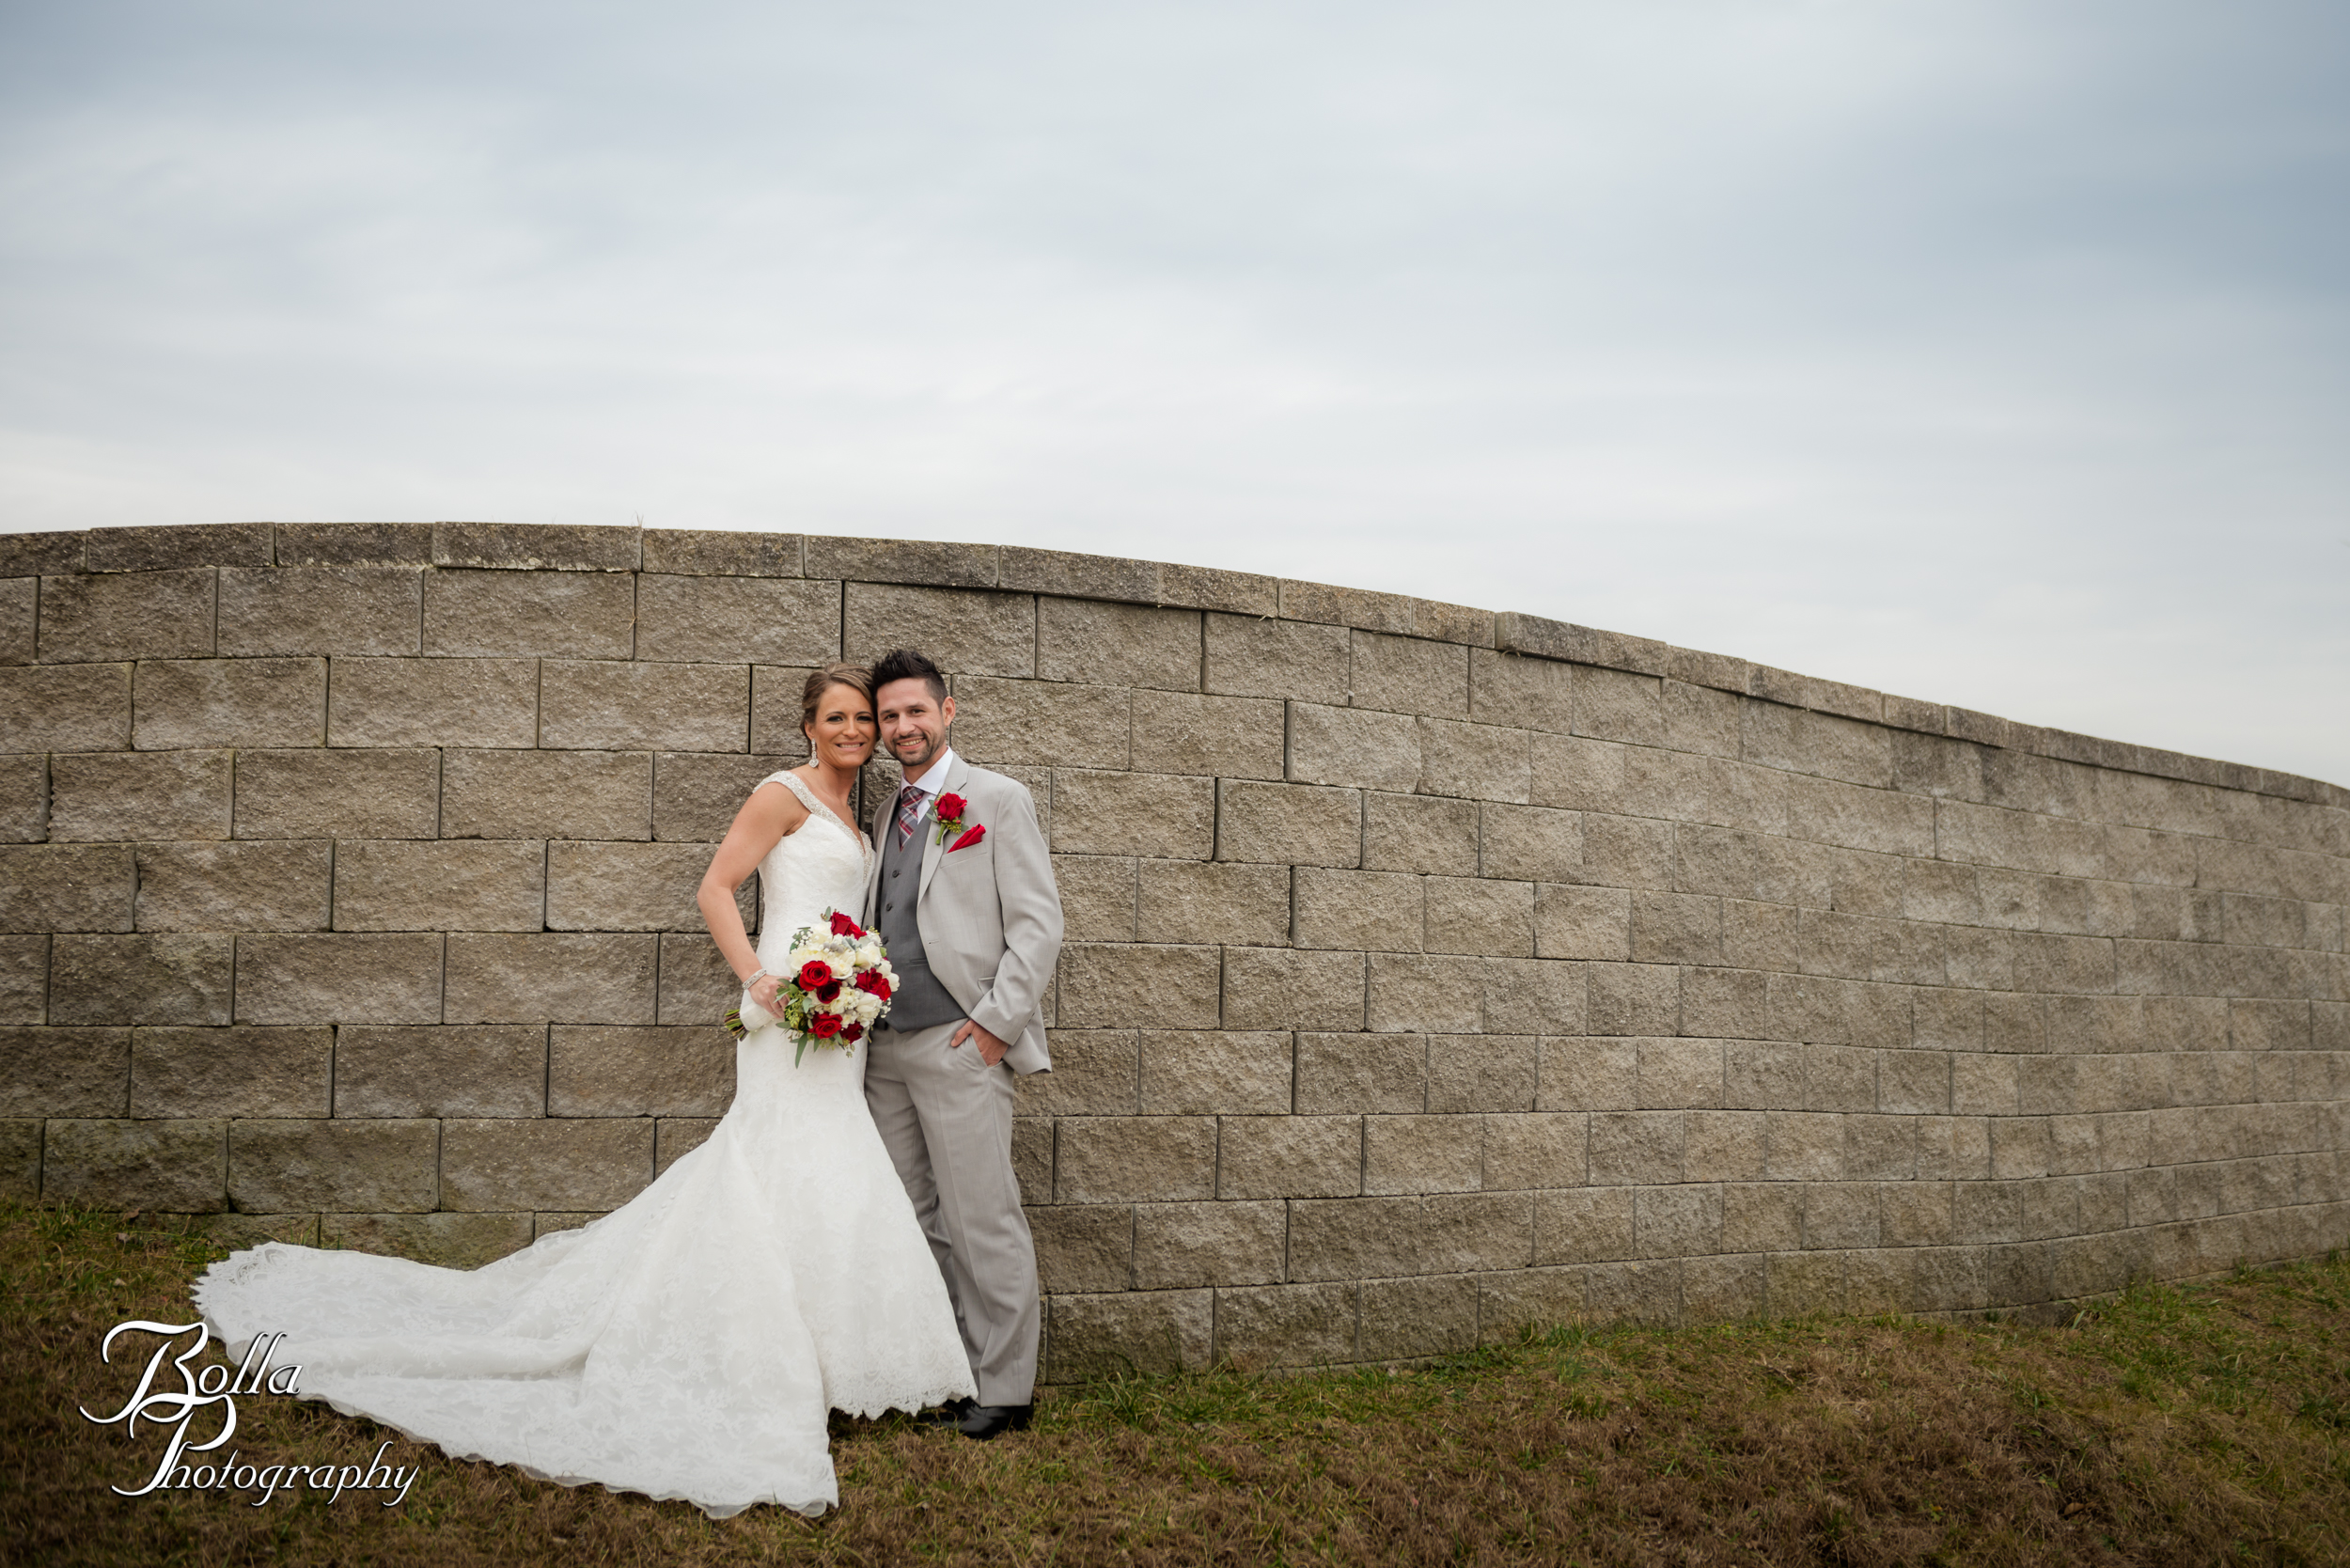 Bolla_photography_edwardsville_wedding_photographer_st_louis_weddings_highland_Allen_Warren_winter_red-0176.jpg